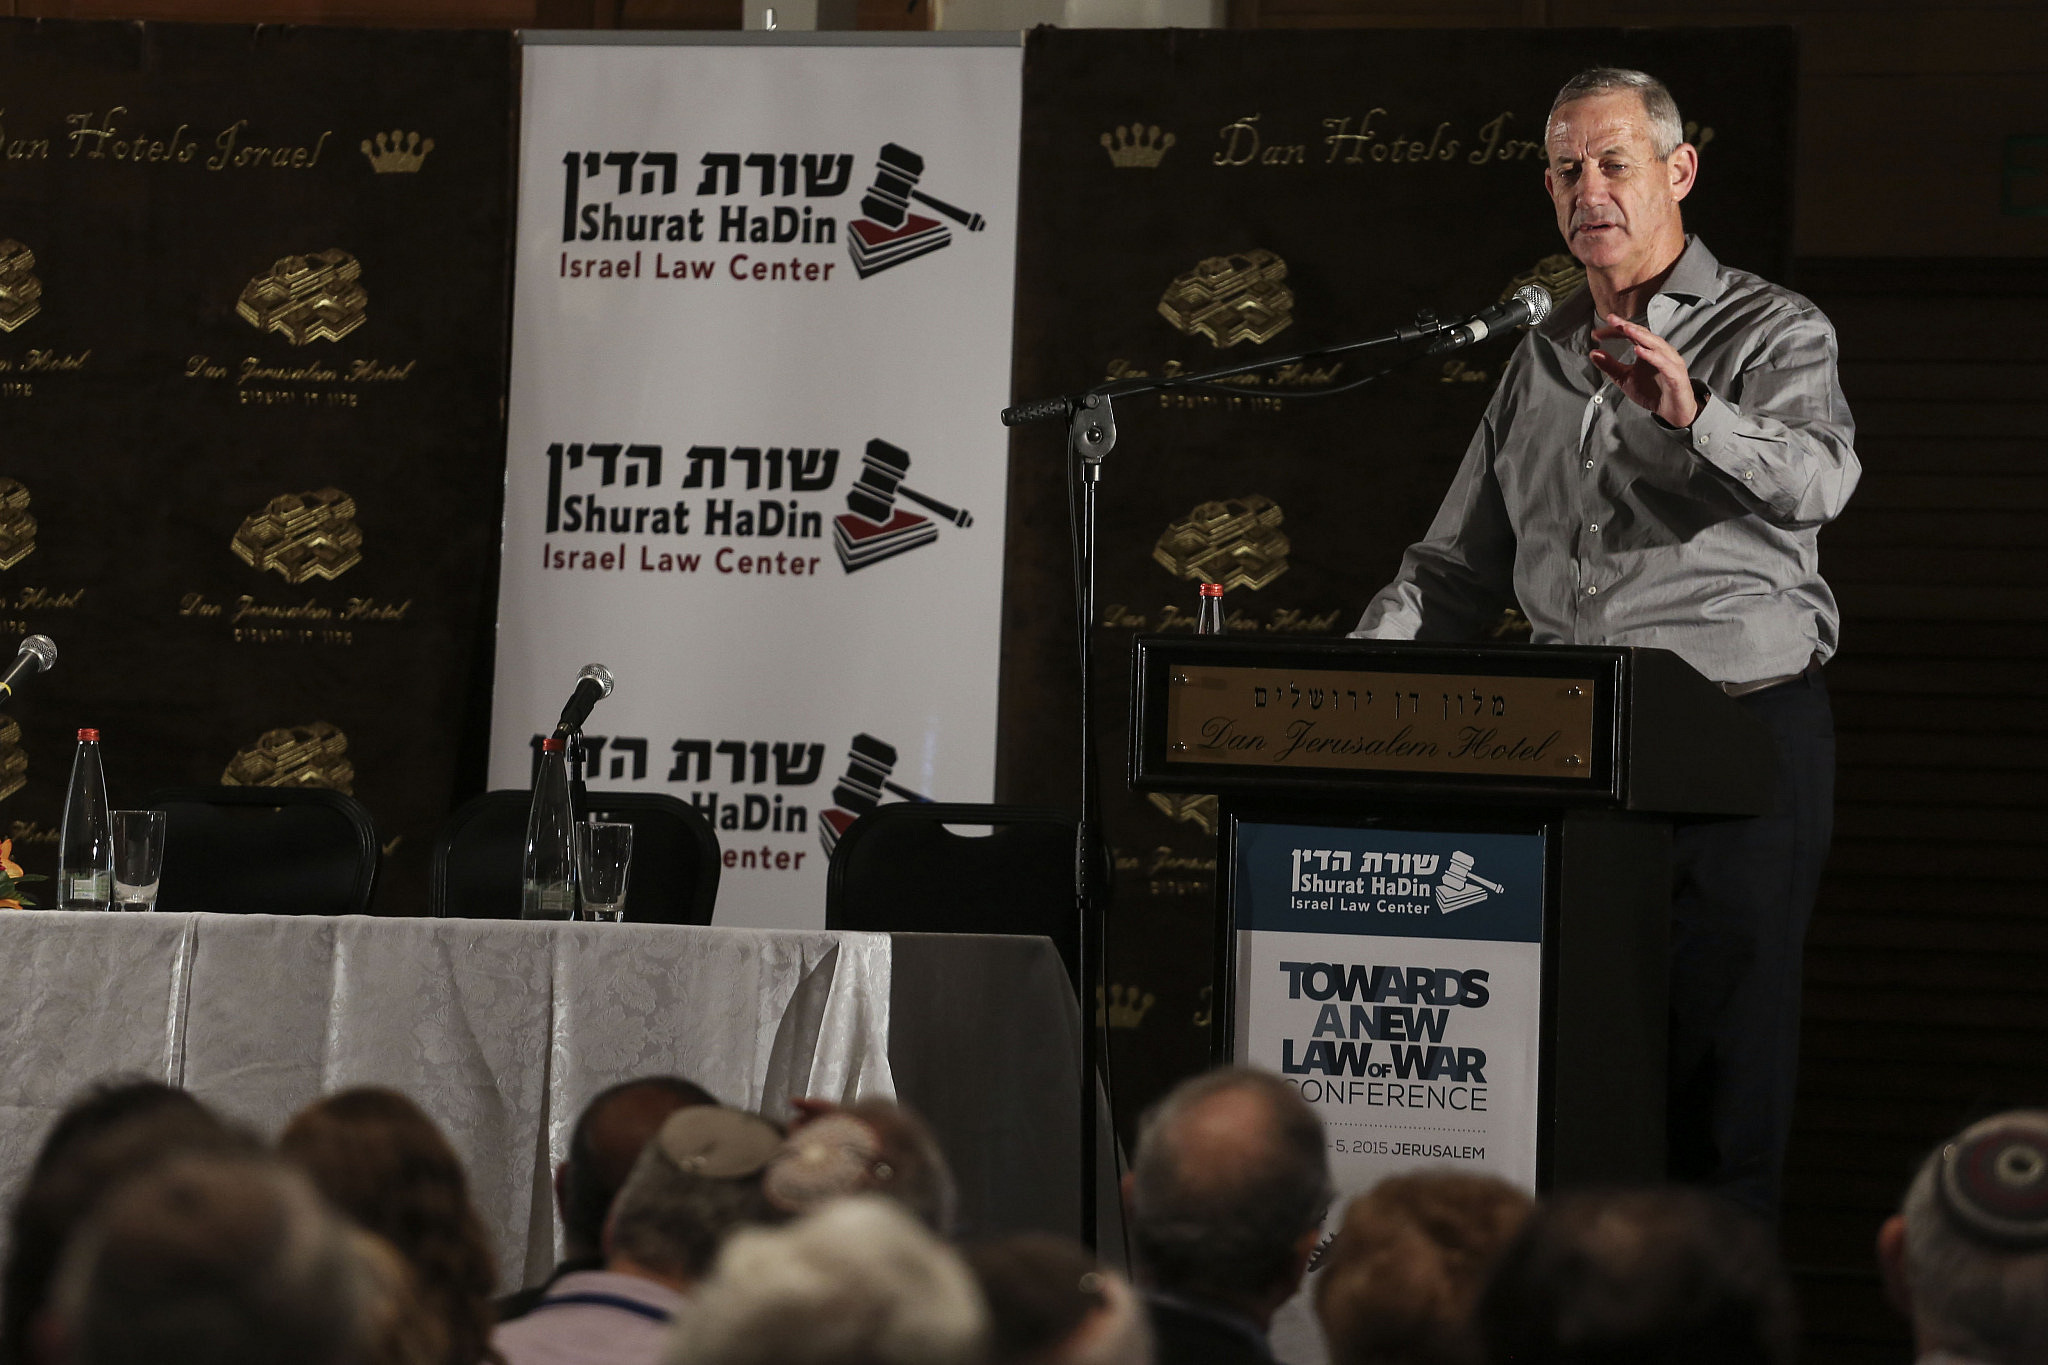 Former IDF Chief of Staff and future head of the Blue and White party, Benny Gantz, speaks during the conference 'Towards a New Law of War' held by Shurat HaDin, Israel Law Center, at the Dan Hotel, Jerusalem, May 4, 2015. (Hadas Parush/Flash90)